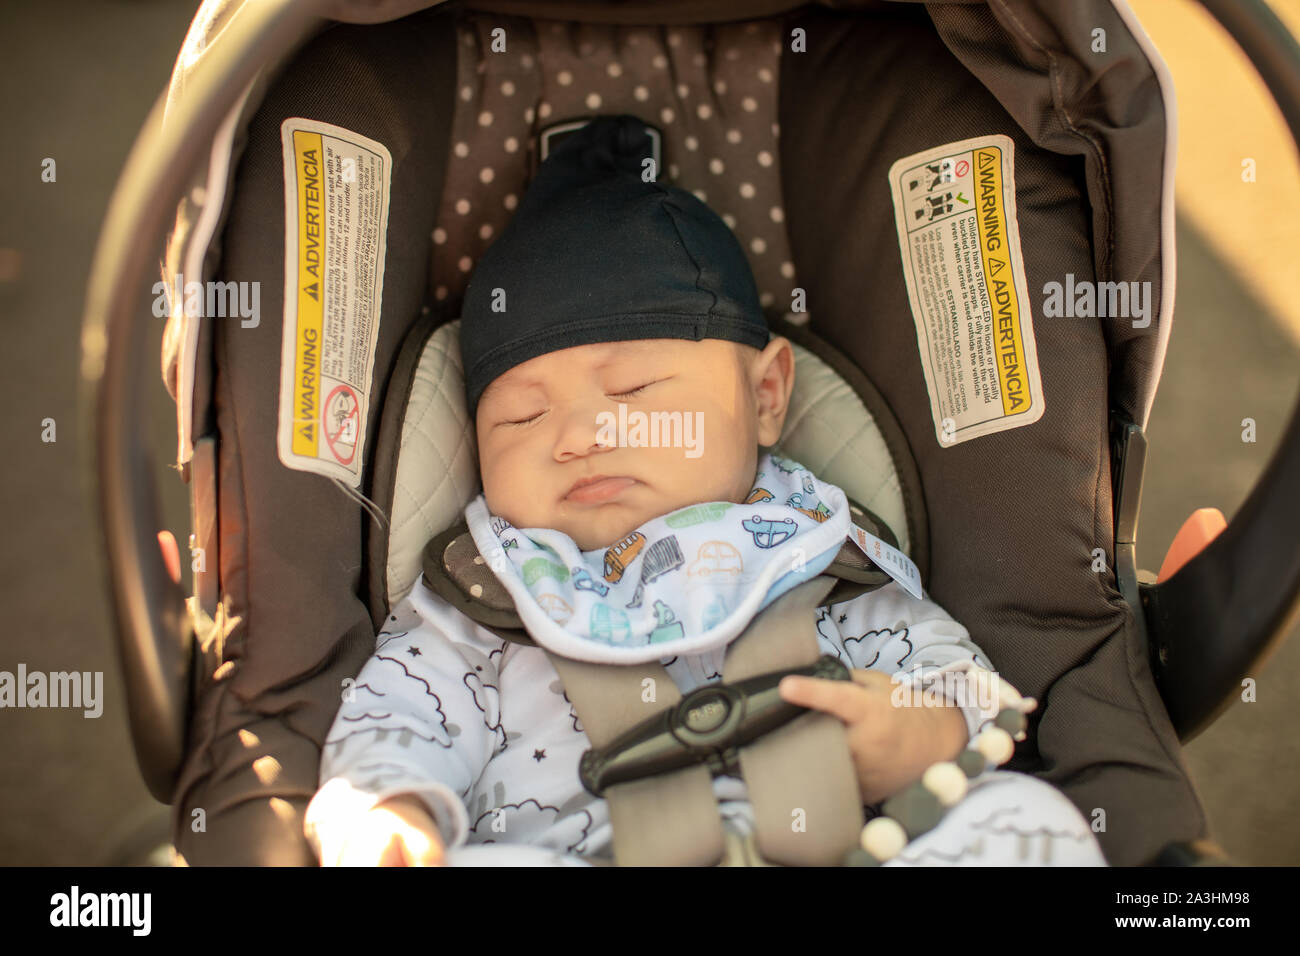 Cute Little Baby Boy Sleeping In Infant Car Seat Stock Photo Alamy